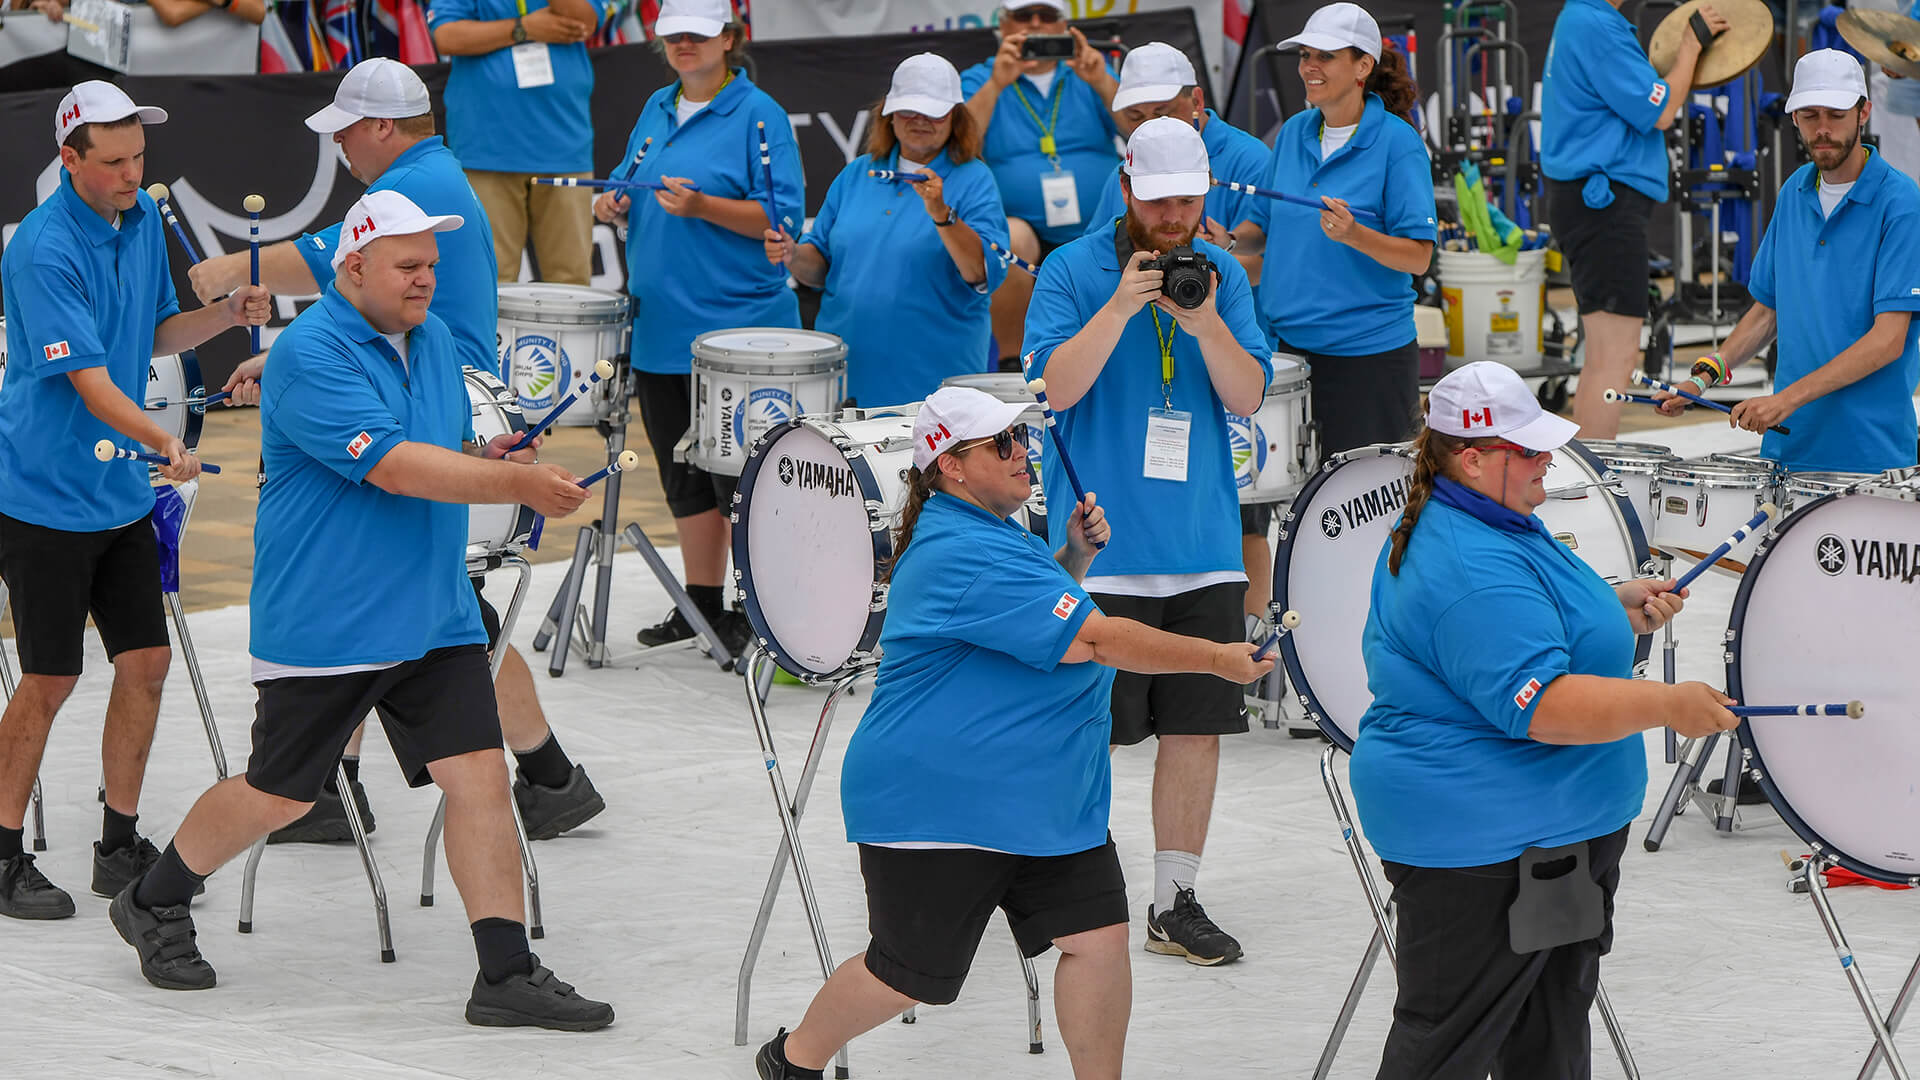 Calgary Stampede Taking Indy Drumline Battle Crown Back To